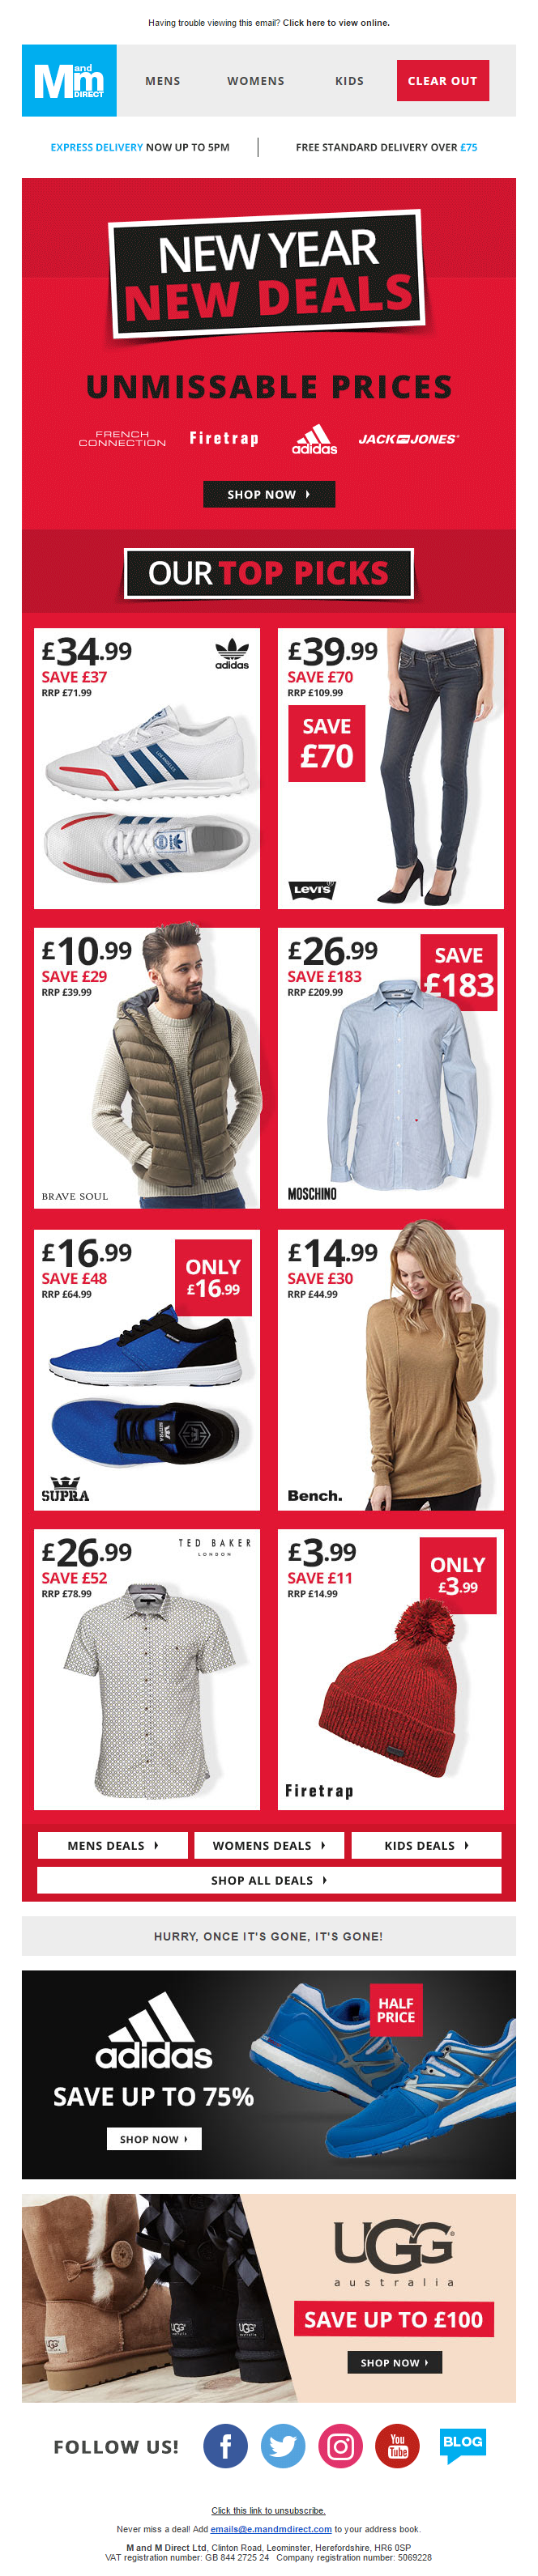 first look new arrive classic styles M&M Direct New Year Deals Email #EmailMarketing #Email ...